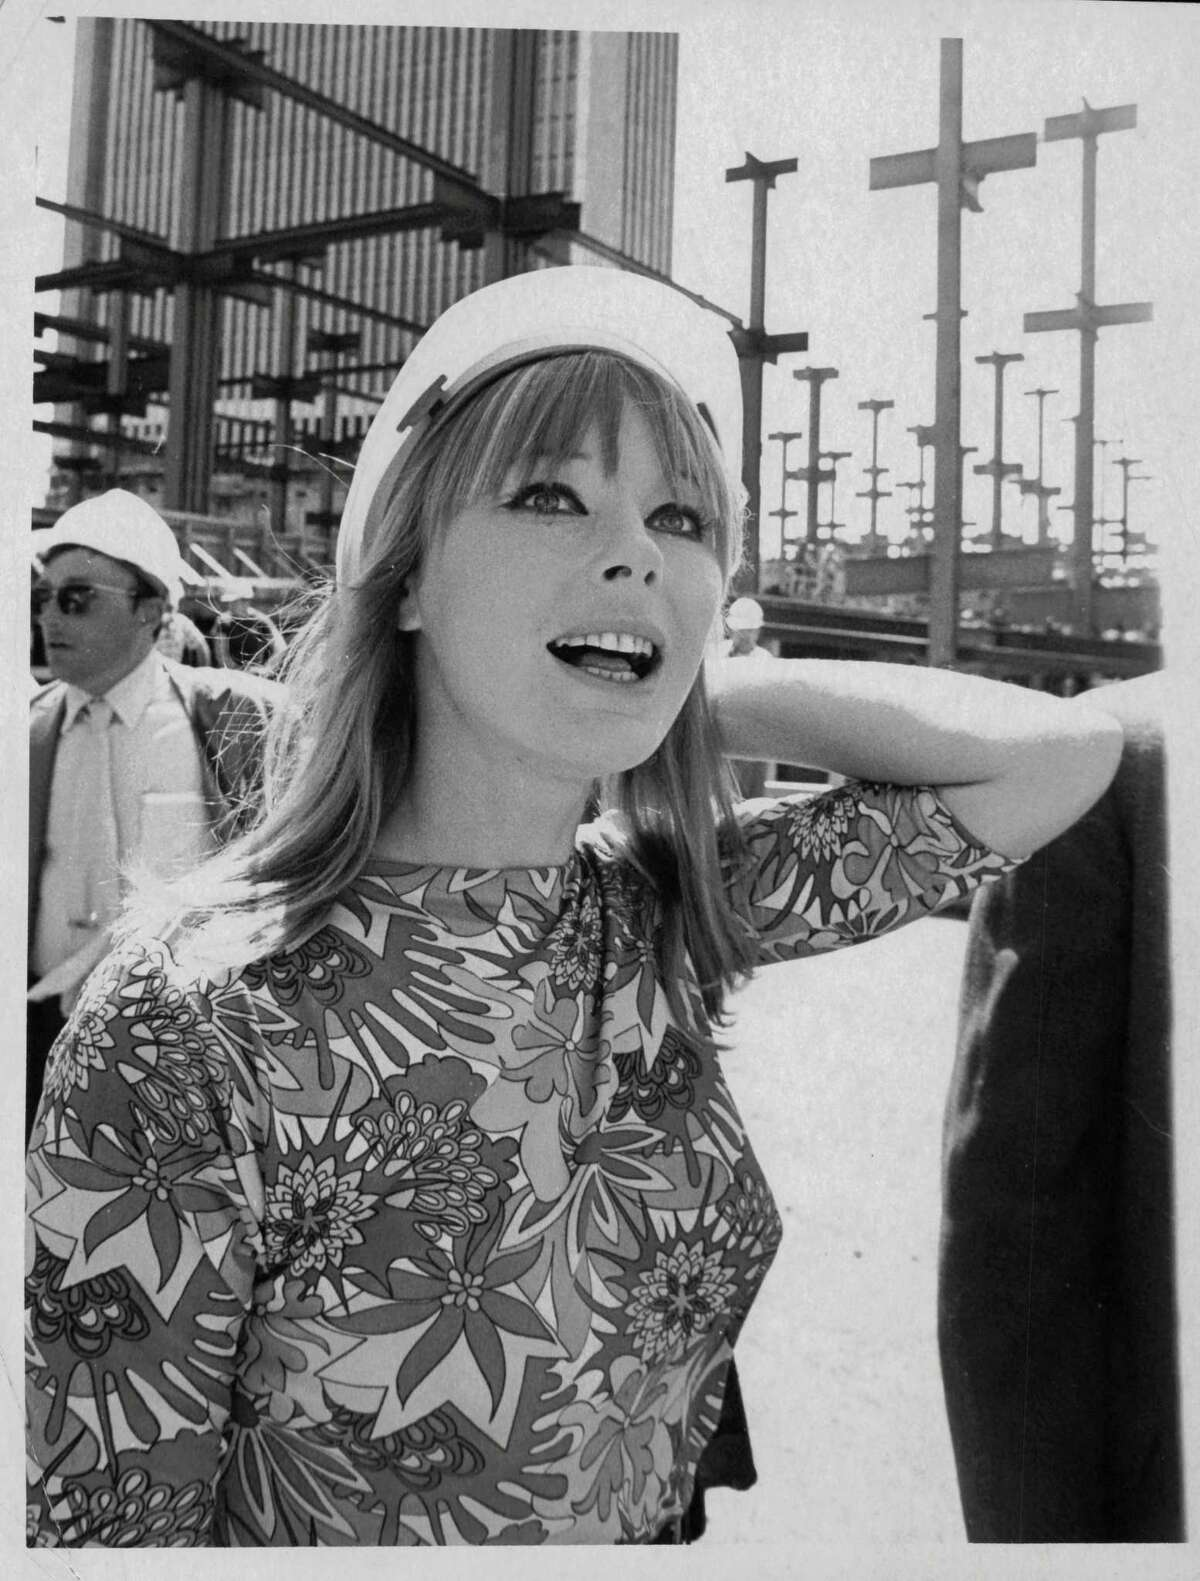 Elke Sommer, actor, touring the South Mall as it is under construction. August 1970 (Times Union Archive)